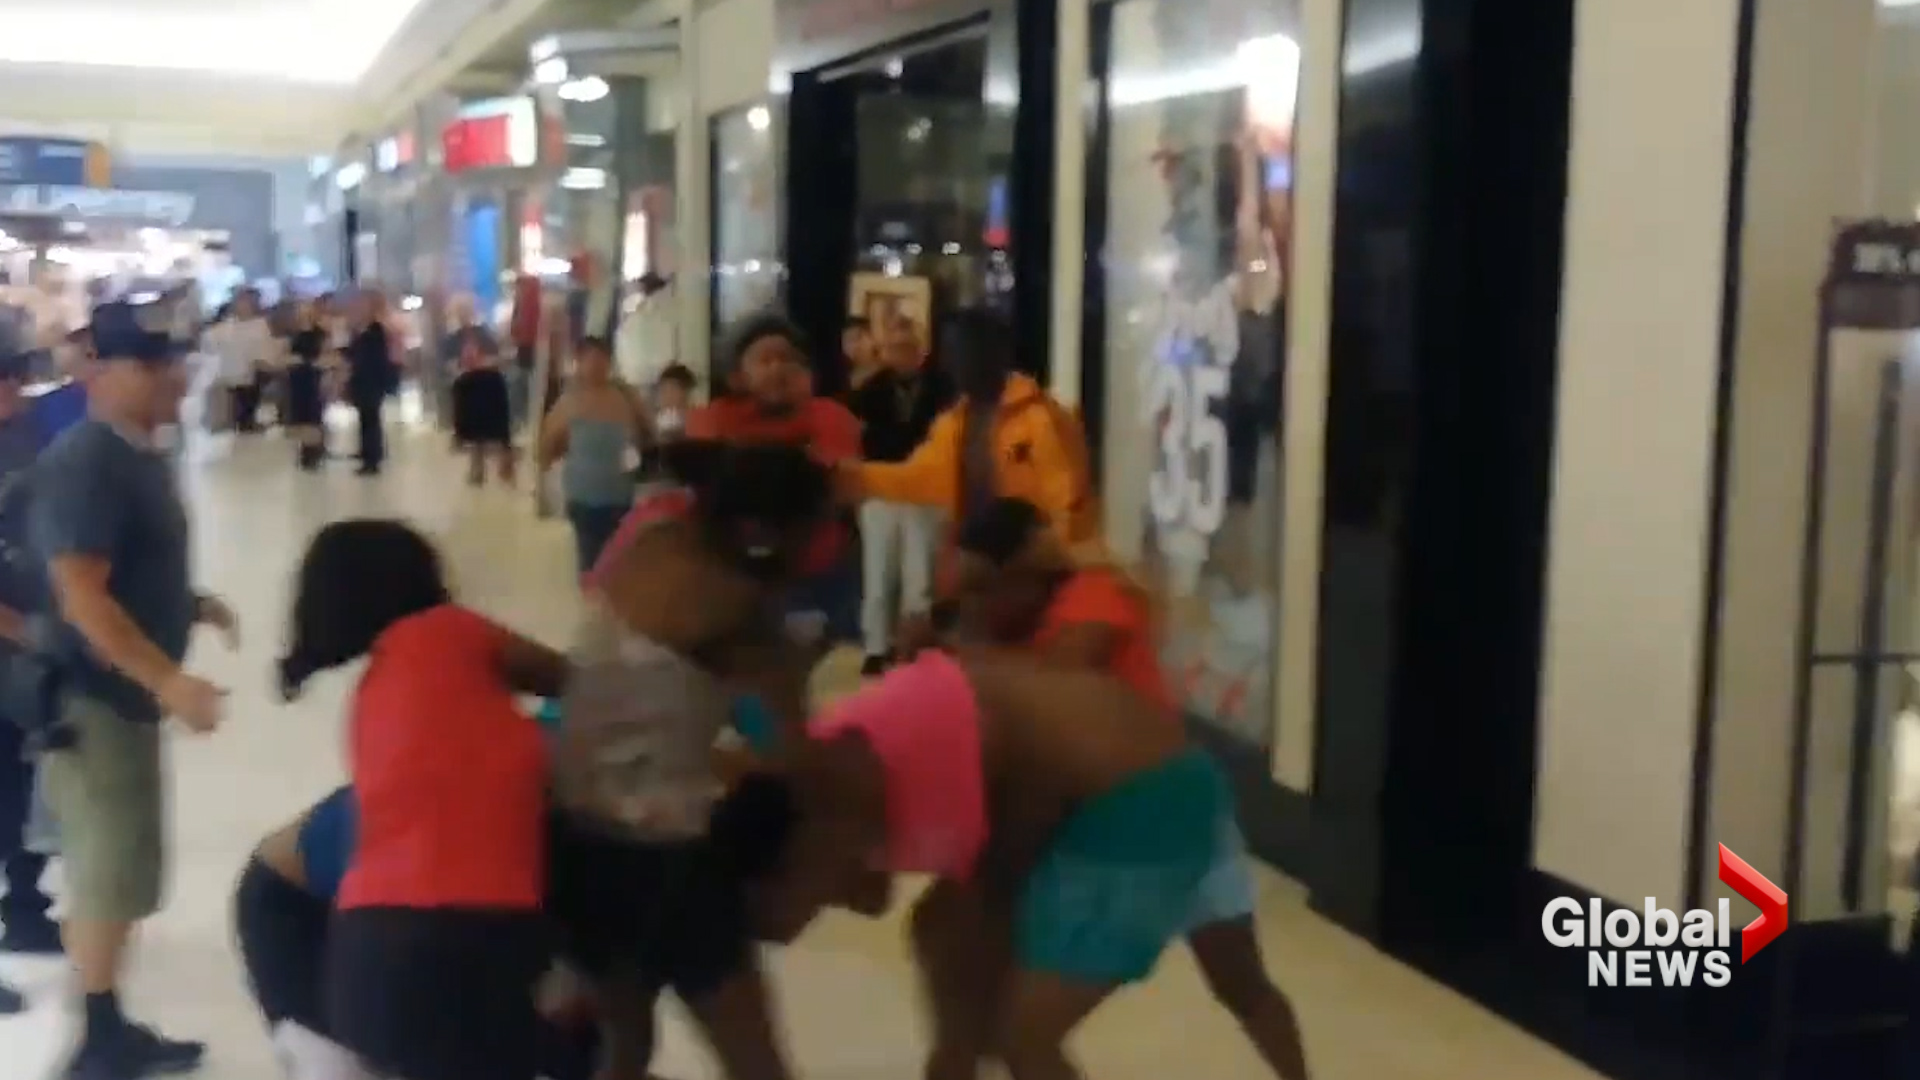 Video shows several people, including child, involved in Fort Myers mall brawl